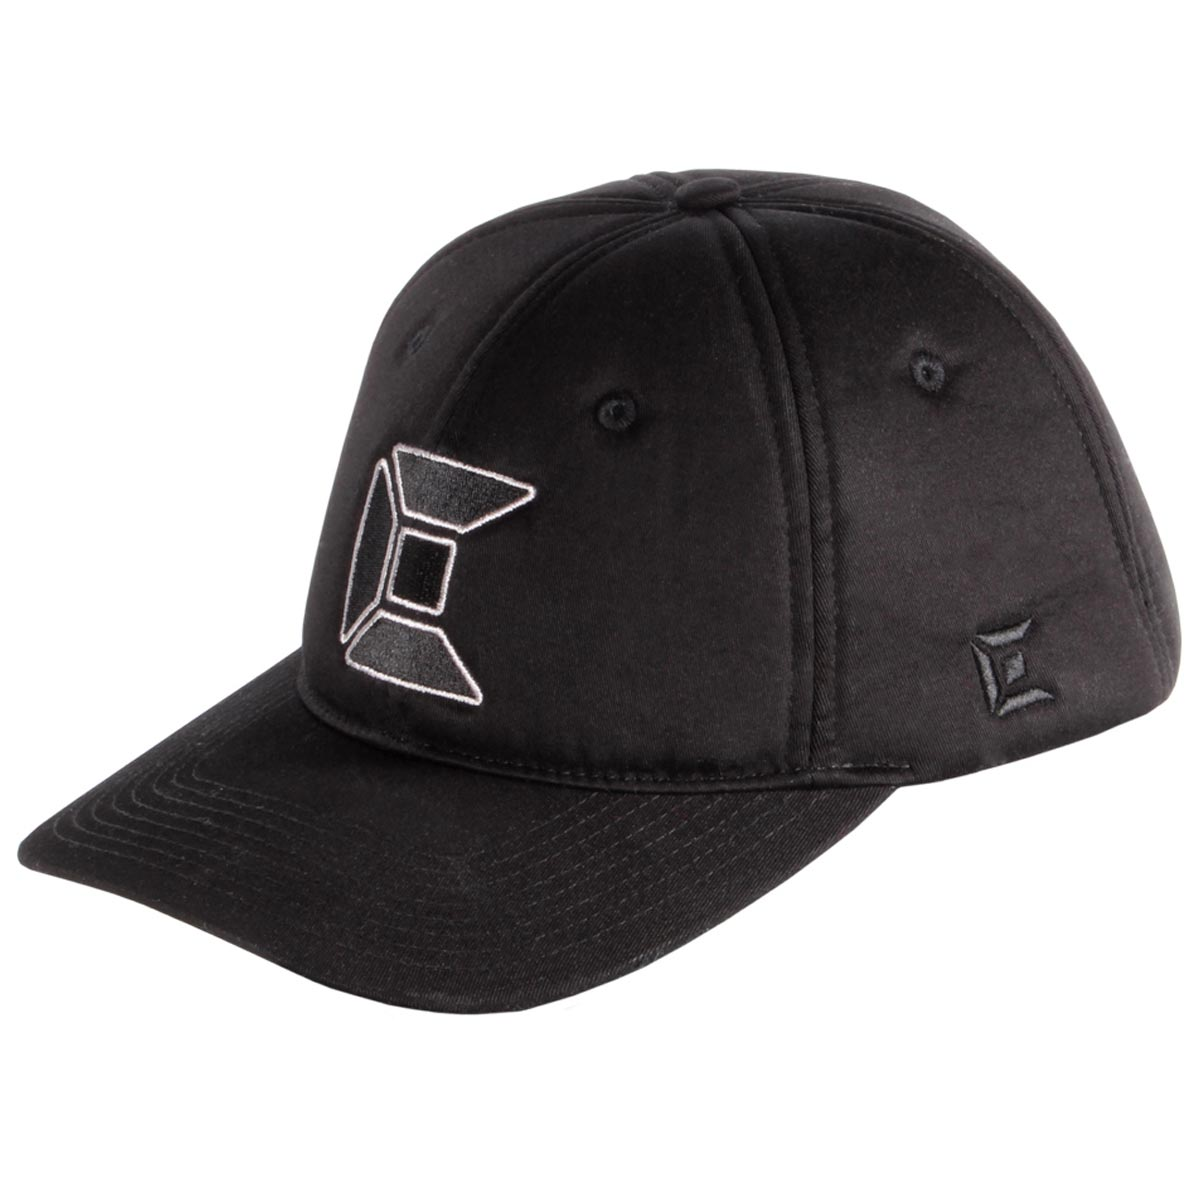 Exalt Padded Bounce Hat Black